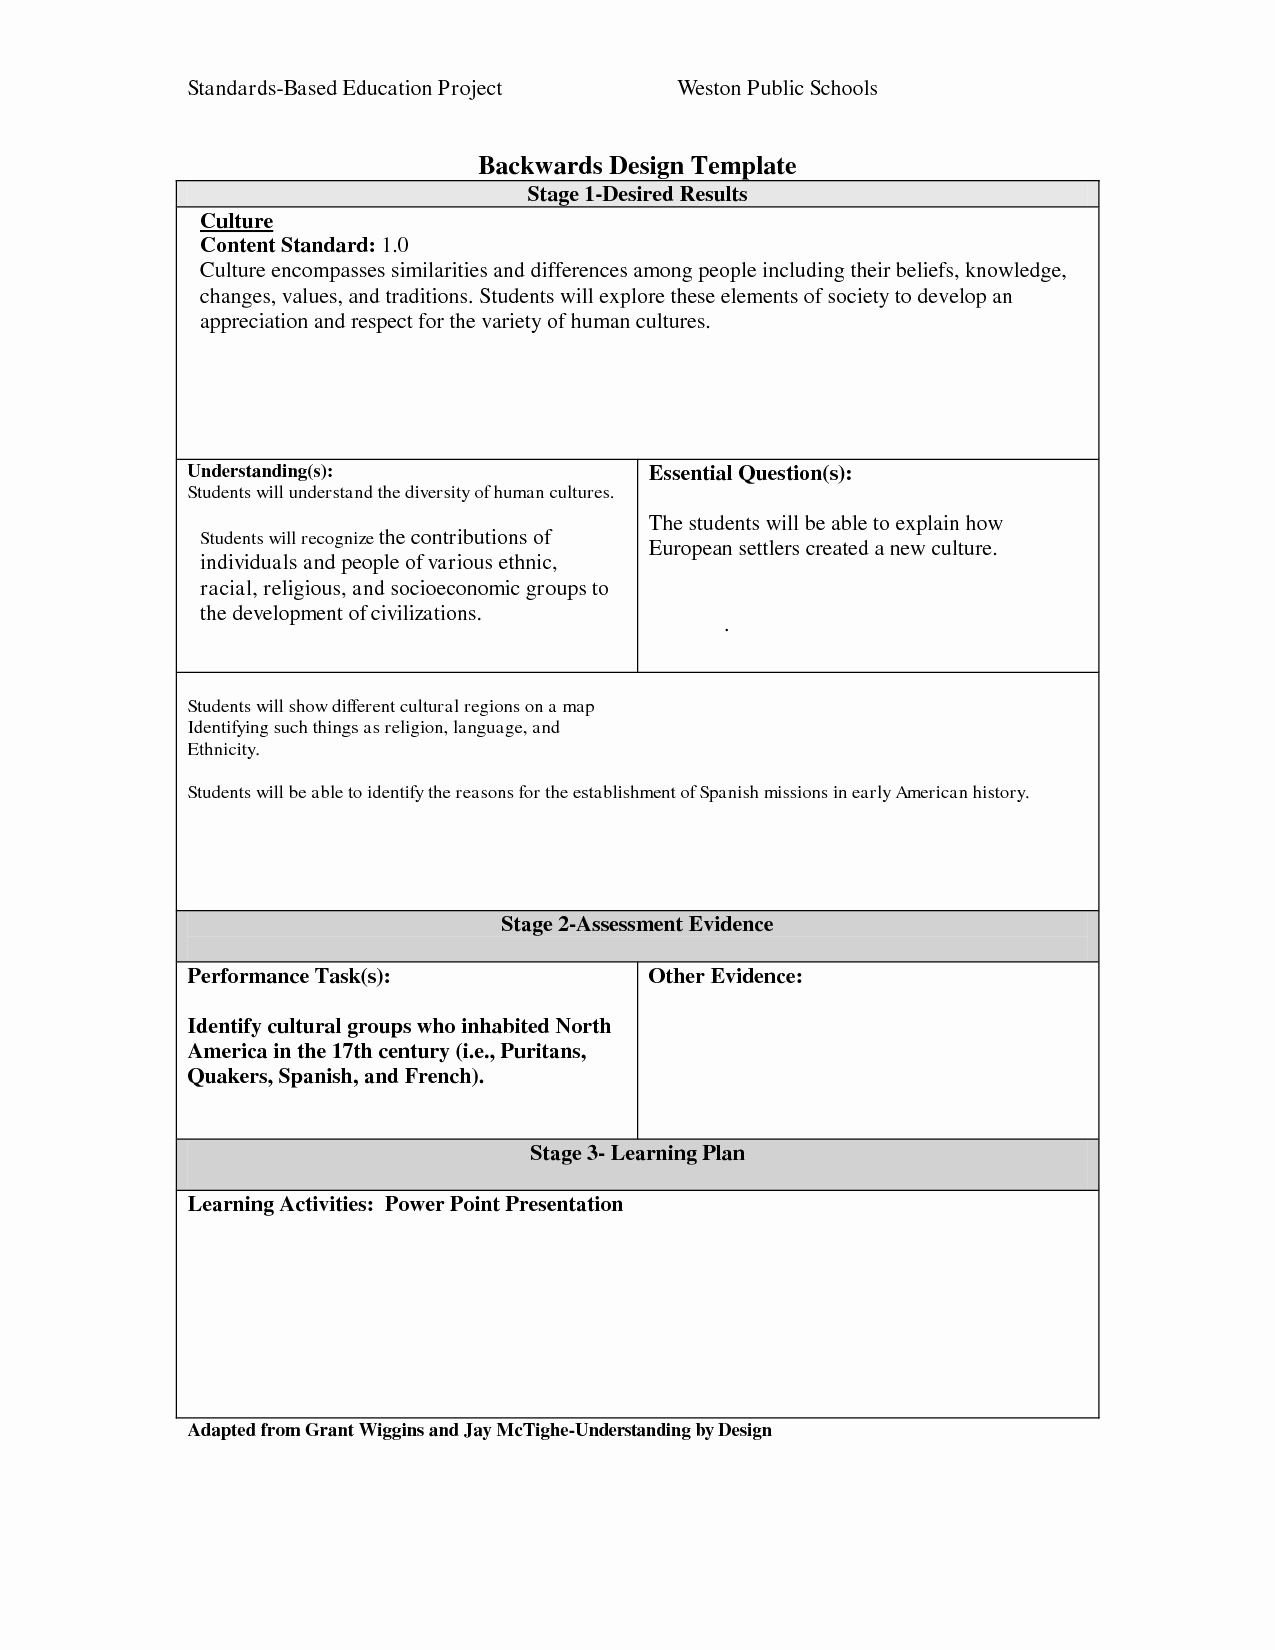 Music Lesson Plan Template Inspirational Backward Design Lesson Template